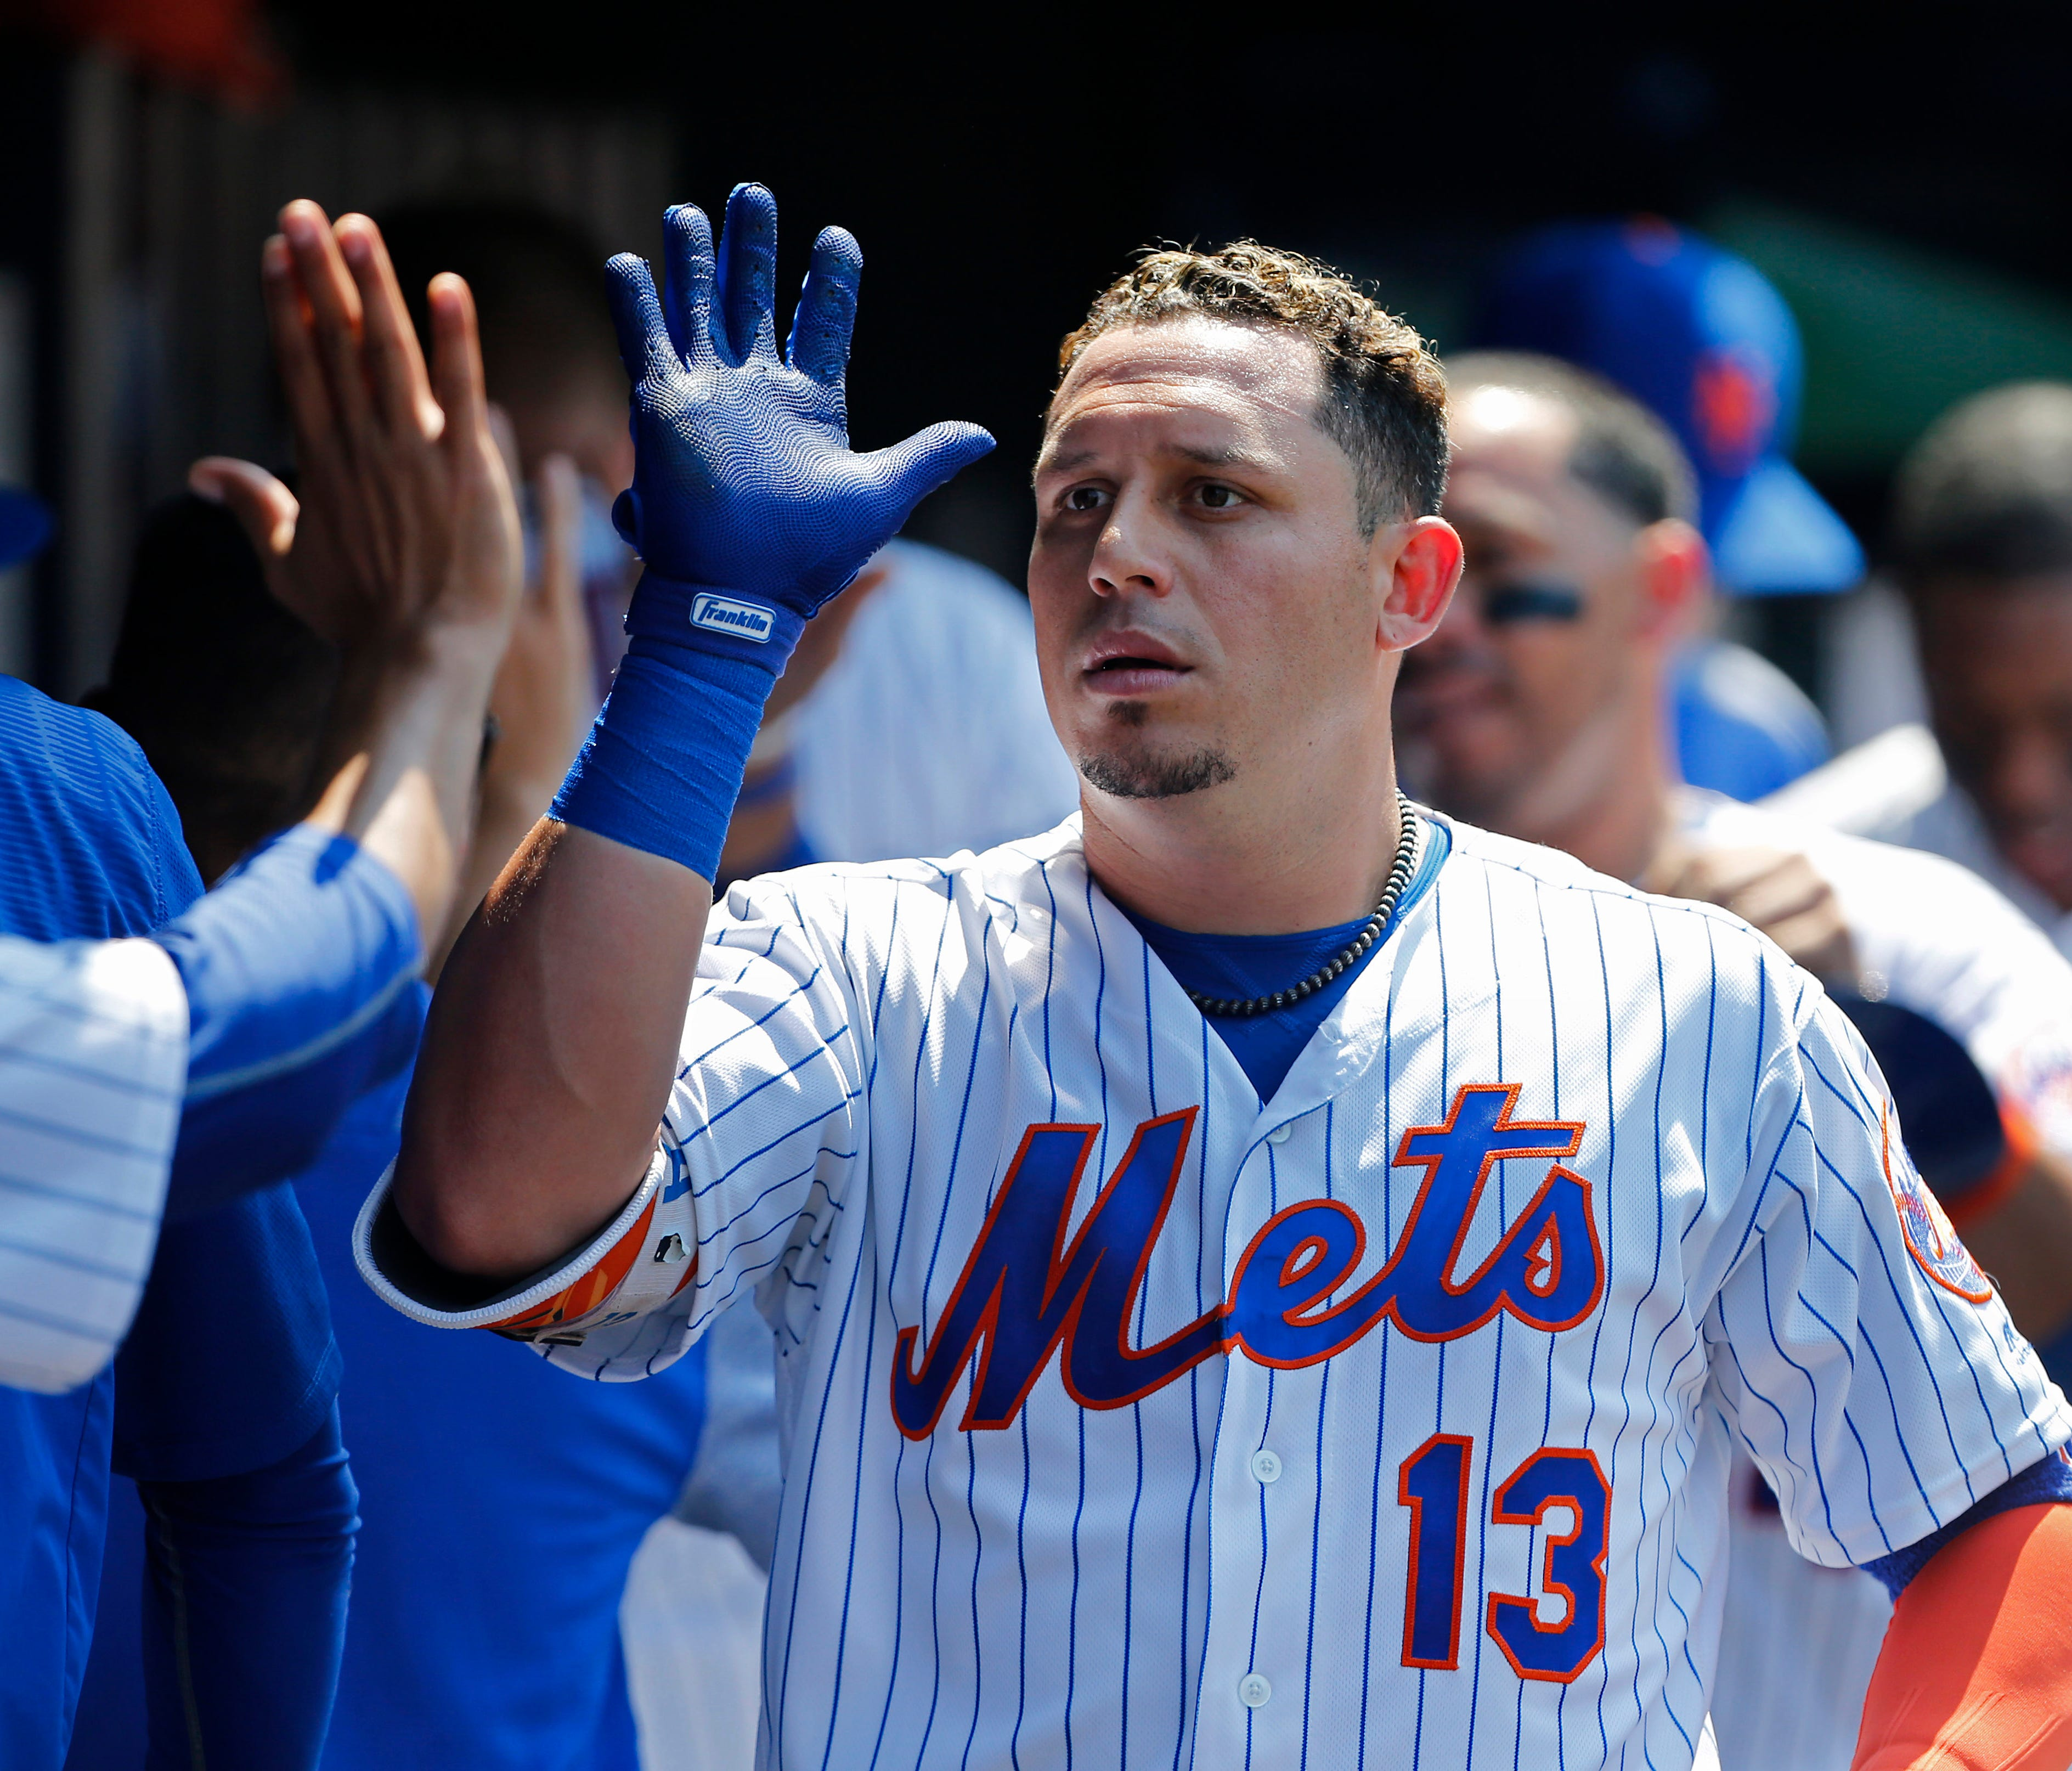 Jul 16, 2017; New York City, NY, USA;  New York Mets shortstop Asdrubal Cabrera (13) celebrate after hitting a home run in the fifth inning against the Colorado Rockies    at Citi Field. Mandatory Credit: Noah K. Murray-USA TODAY Sports